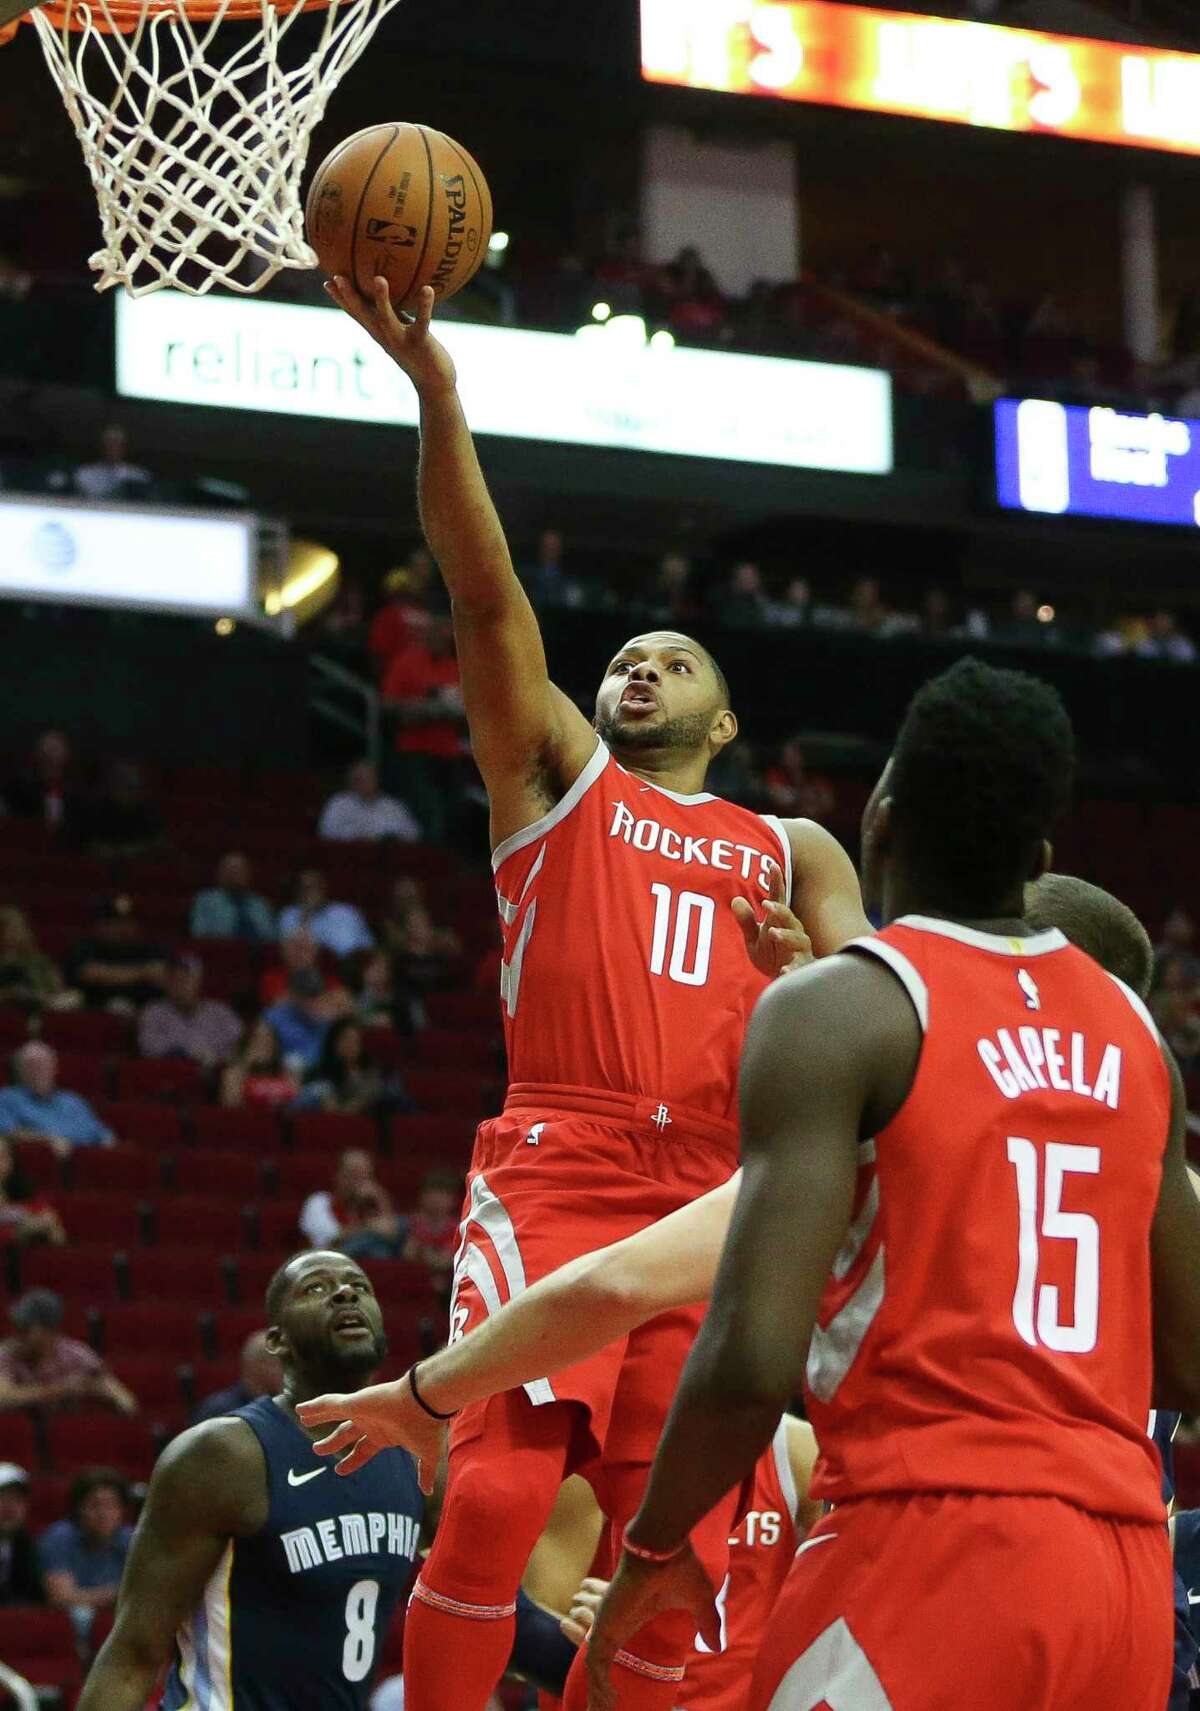 Houston Rockets guard Eric Gordon (10) goes for the basket during the first quarter of the NBA game at Toyota Center Monday, Oct. 23, 2017, in Houston.